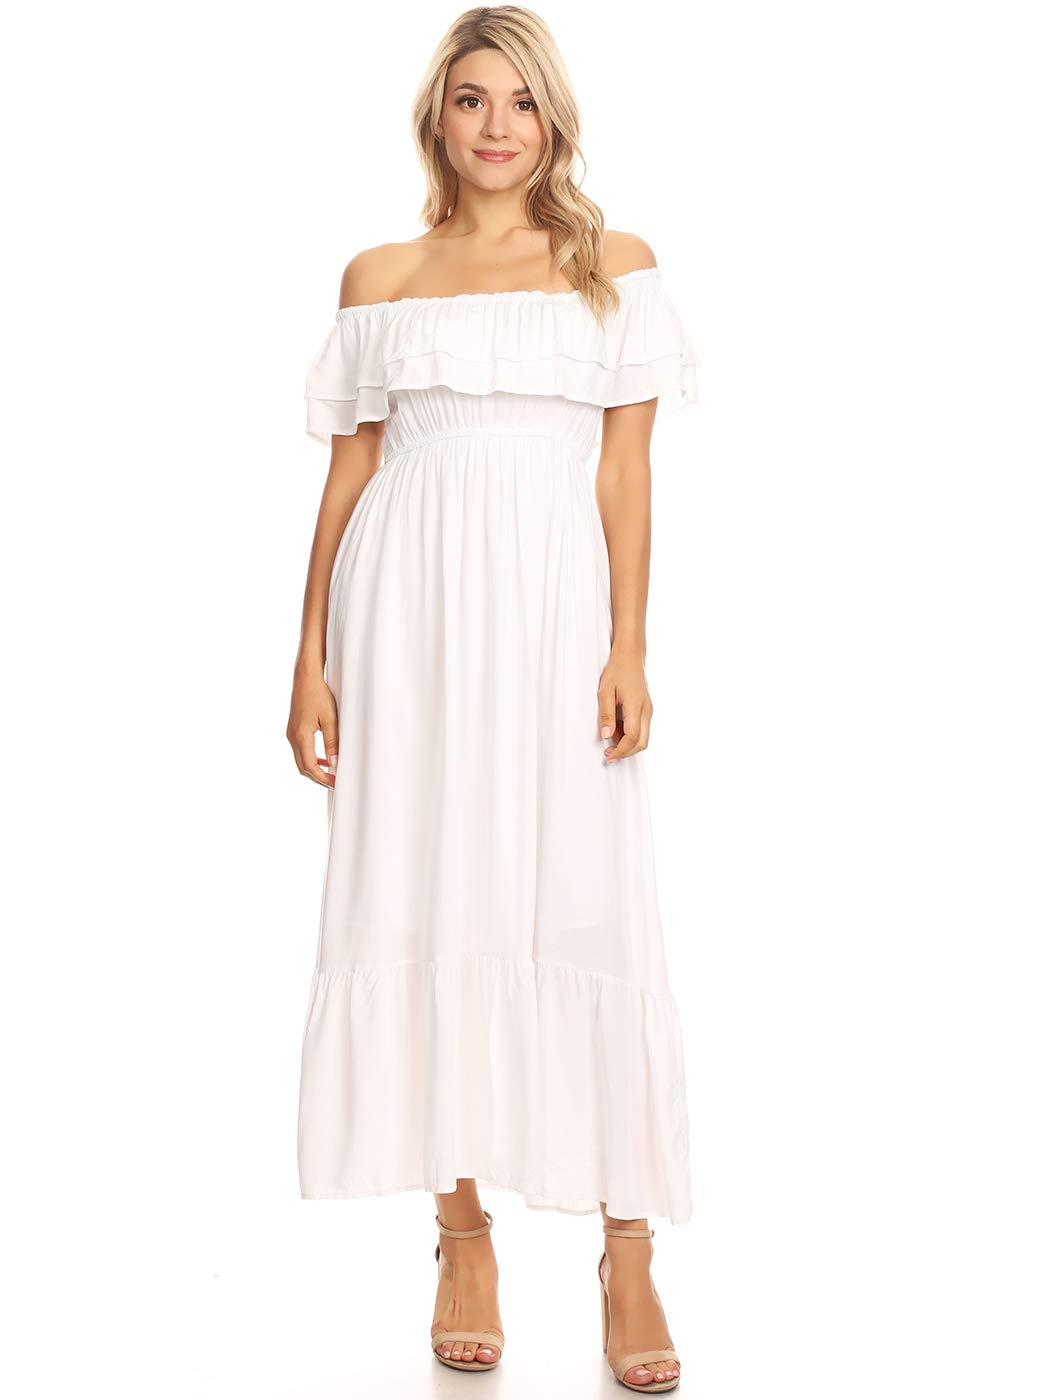 Anna-Kaci Womens Boho Peasant Ruffle Stretchy Short Sleeve Maxi Long Dress, White, Small